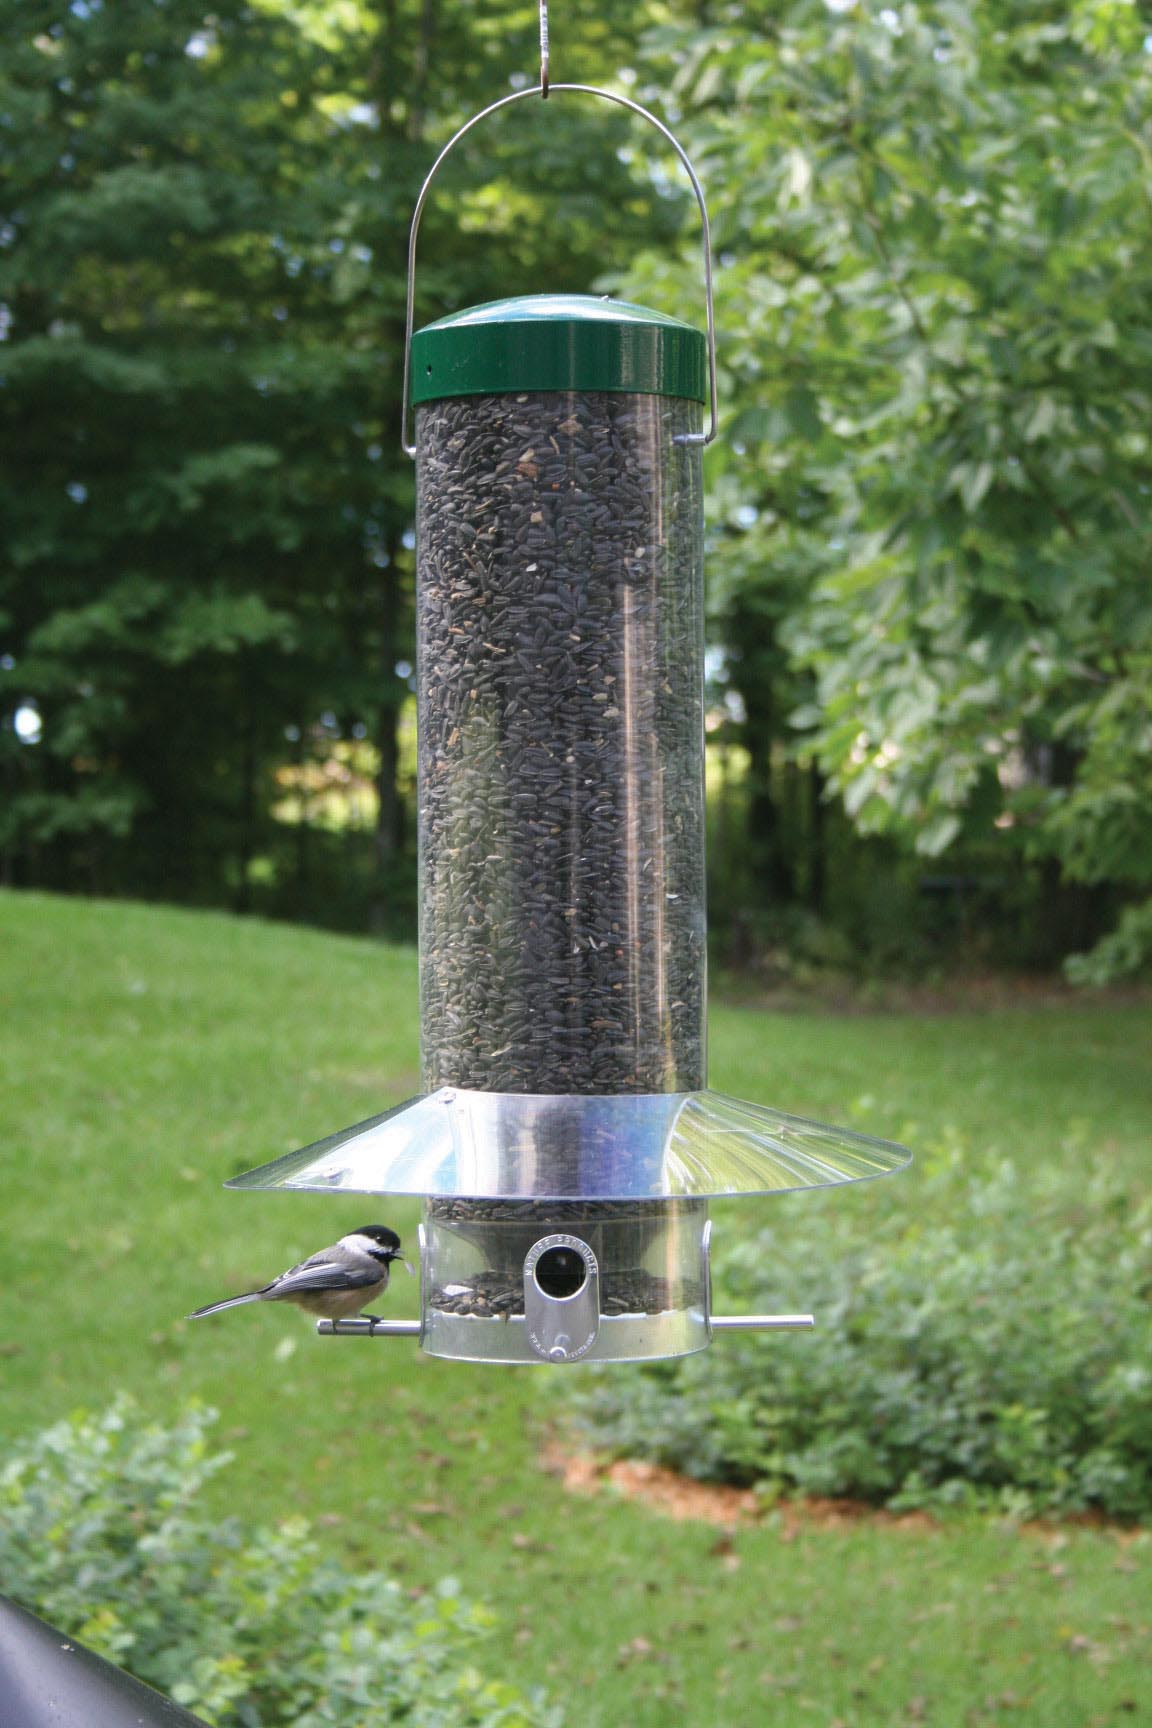 Where to Hang Bird Feeders